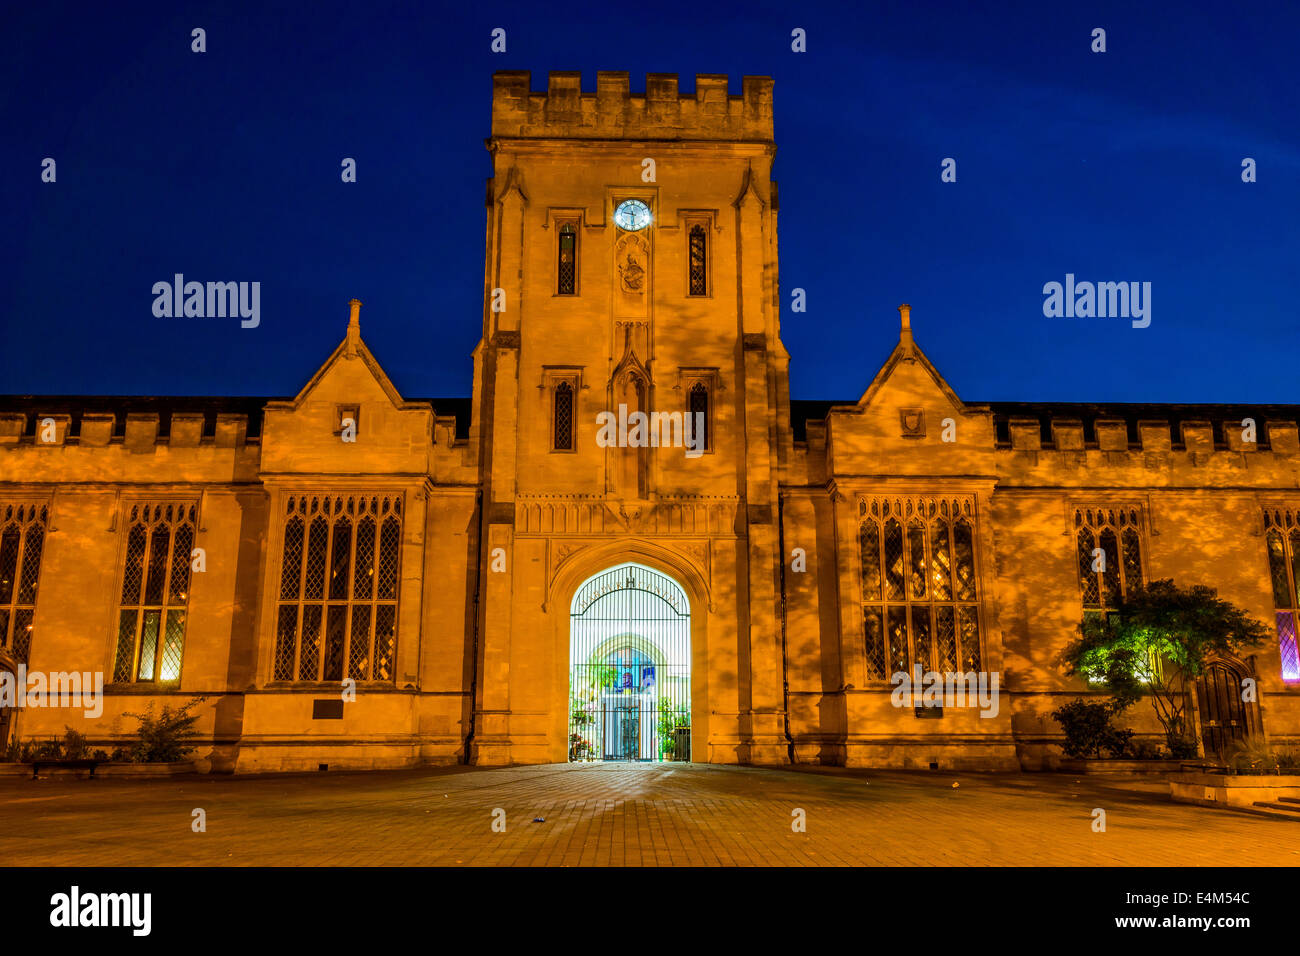 Harpur Centre in Bedford, UK at night - Stock Image